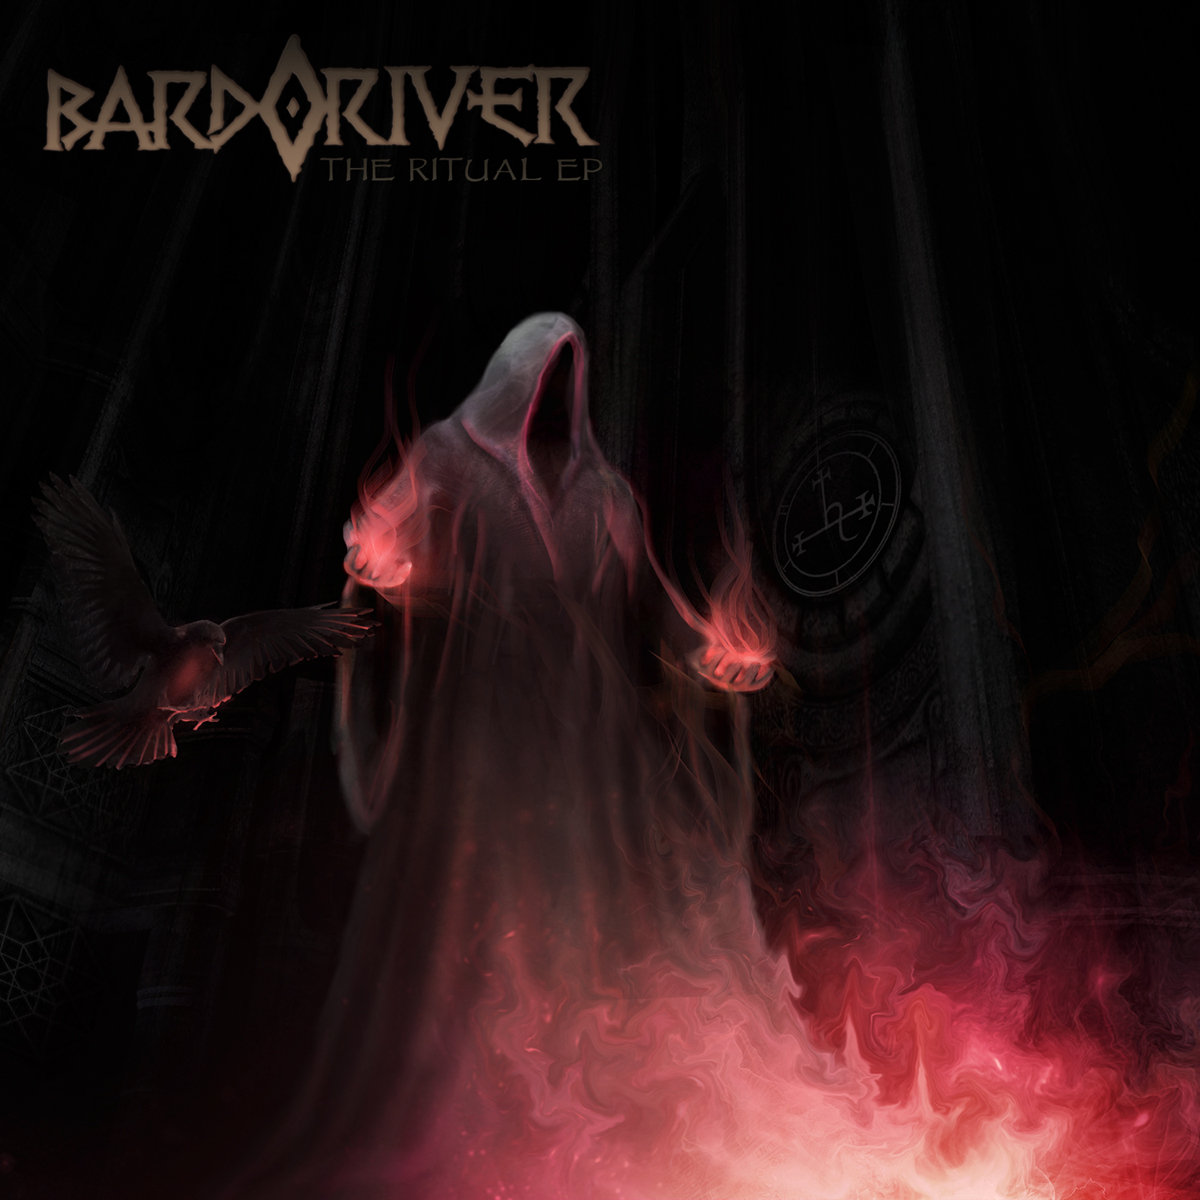 Bardo River - The Ritual @ 'The Ritual' album (electronic, ambient)